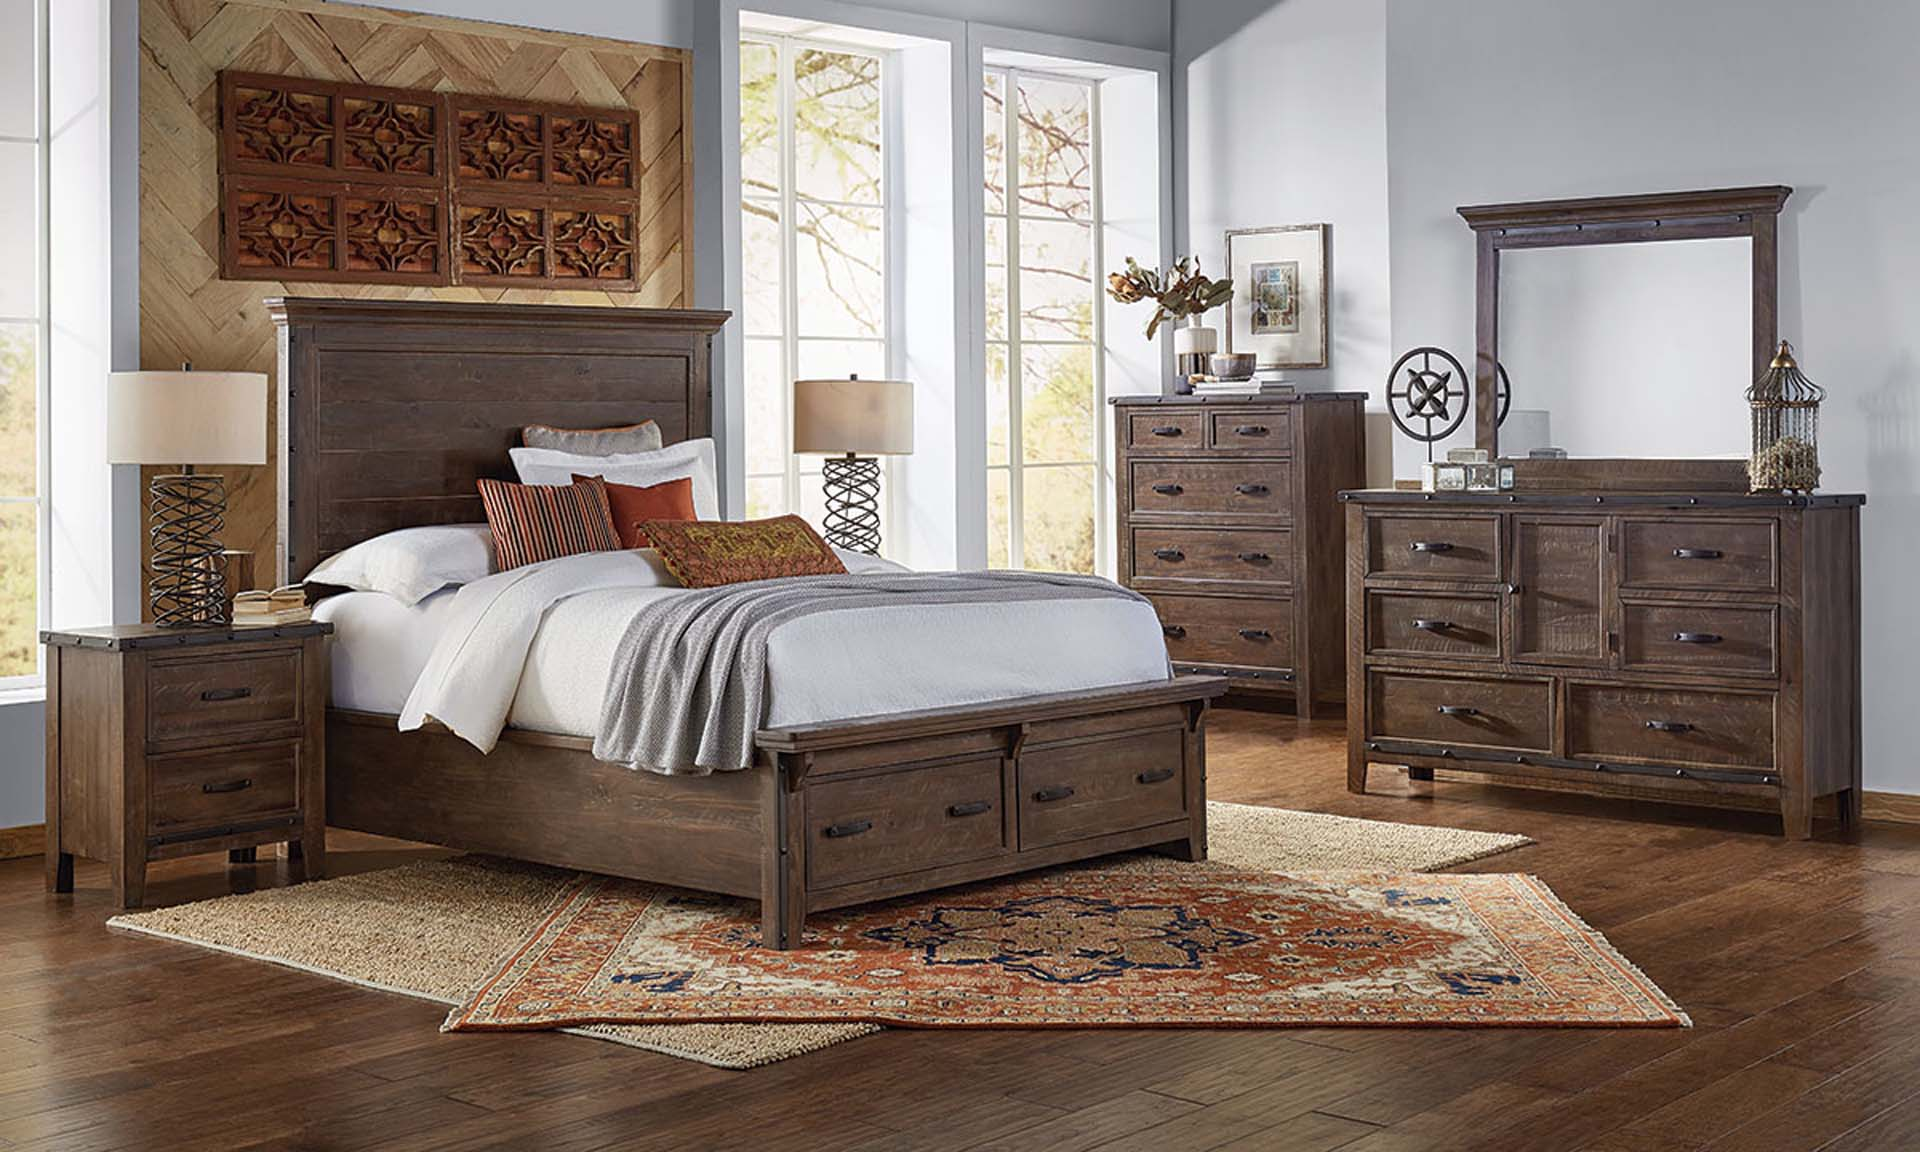 A-America Marquez Solid Pine Queen Bedroom Set with storage bed and 6 drawer dresser with mirror in rustic brown finish